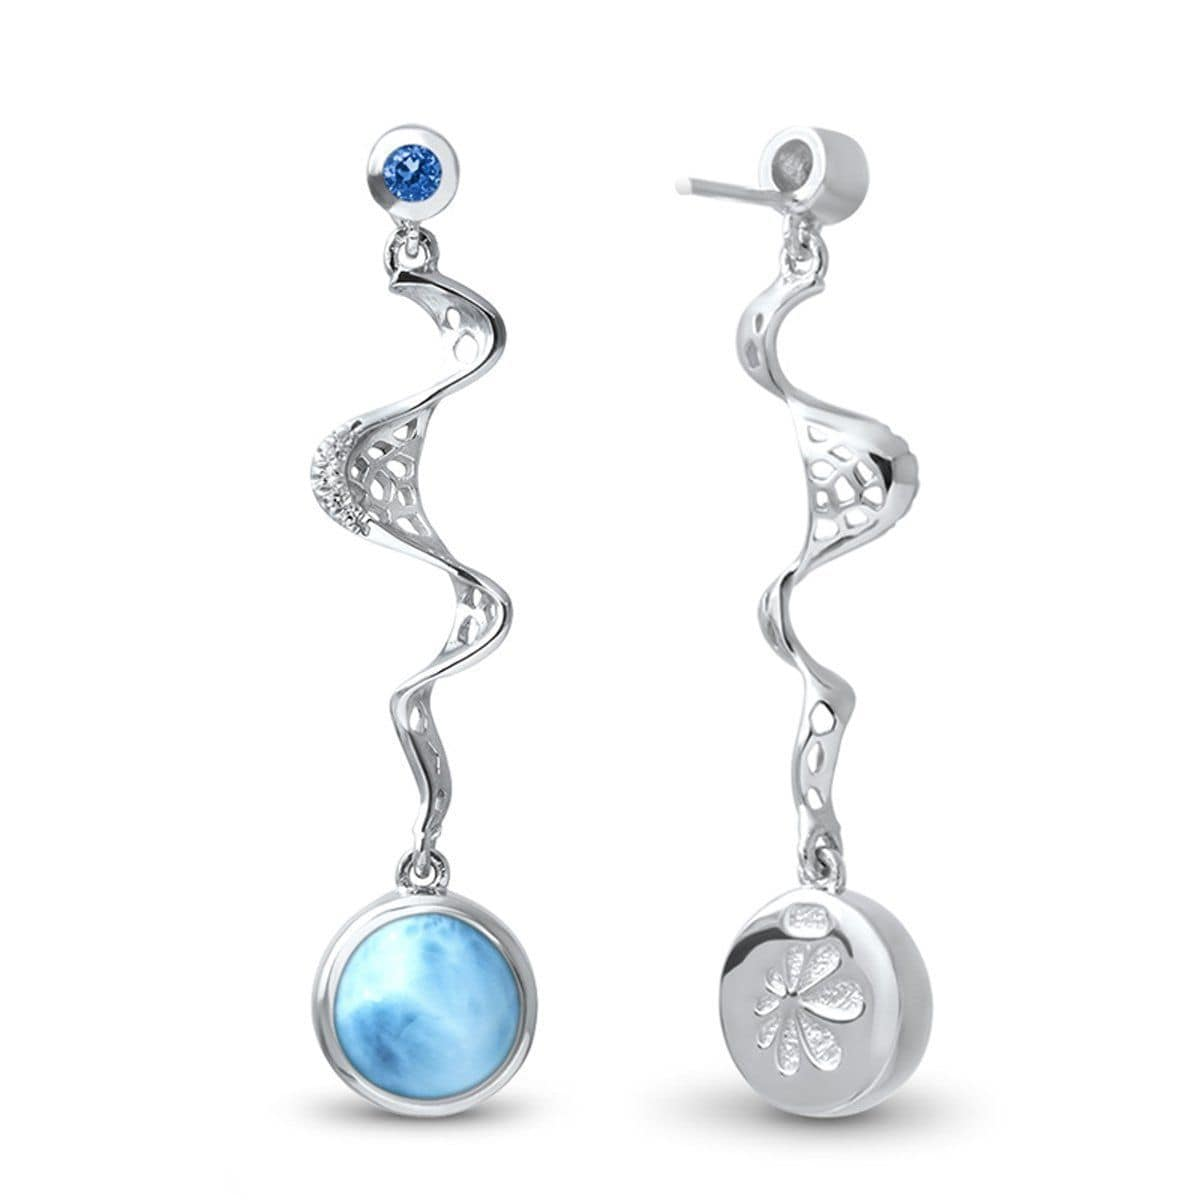 Versailles Earrings - Evers00-00-Marahlago Larimar-Renee Taylor Gallery